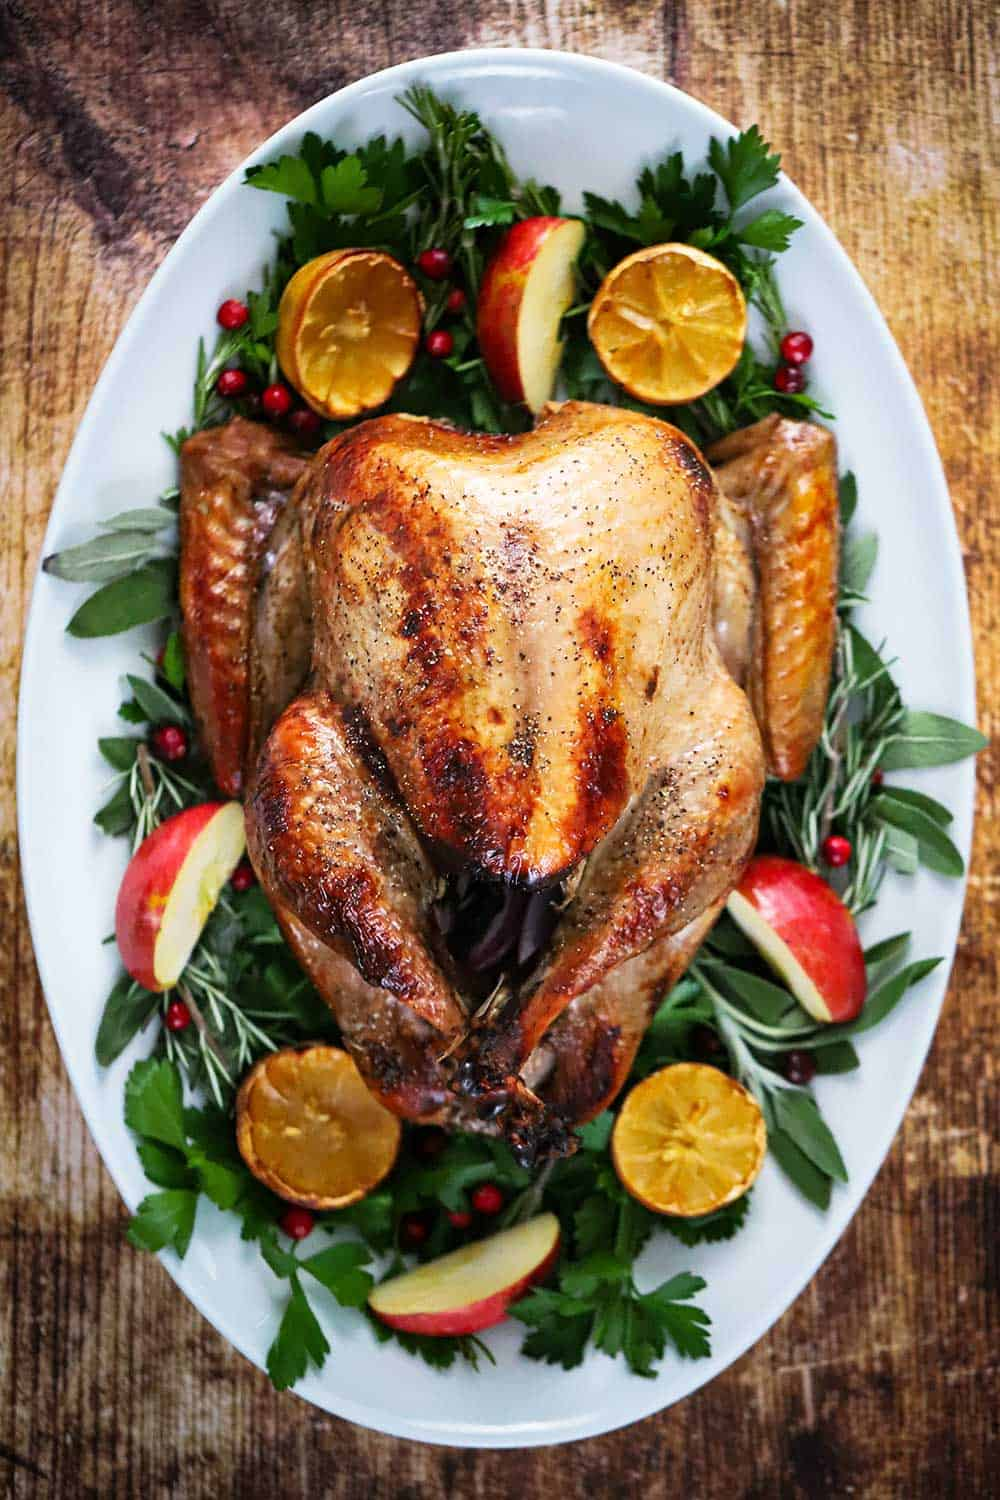 A roasted turkey sitting on a bed of greens and surround by fruit on a large white oval platter.